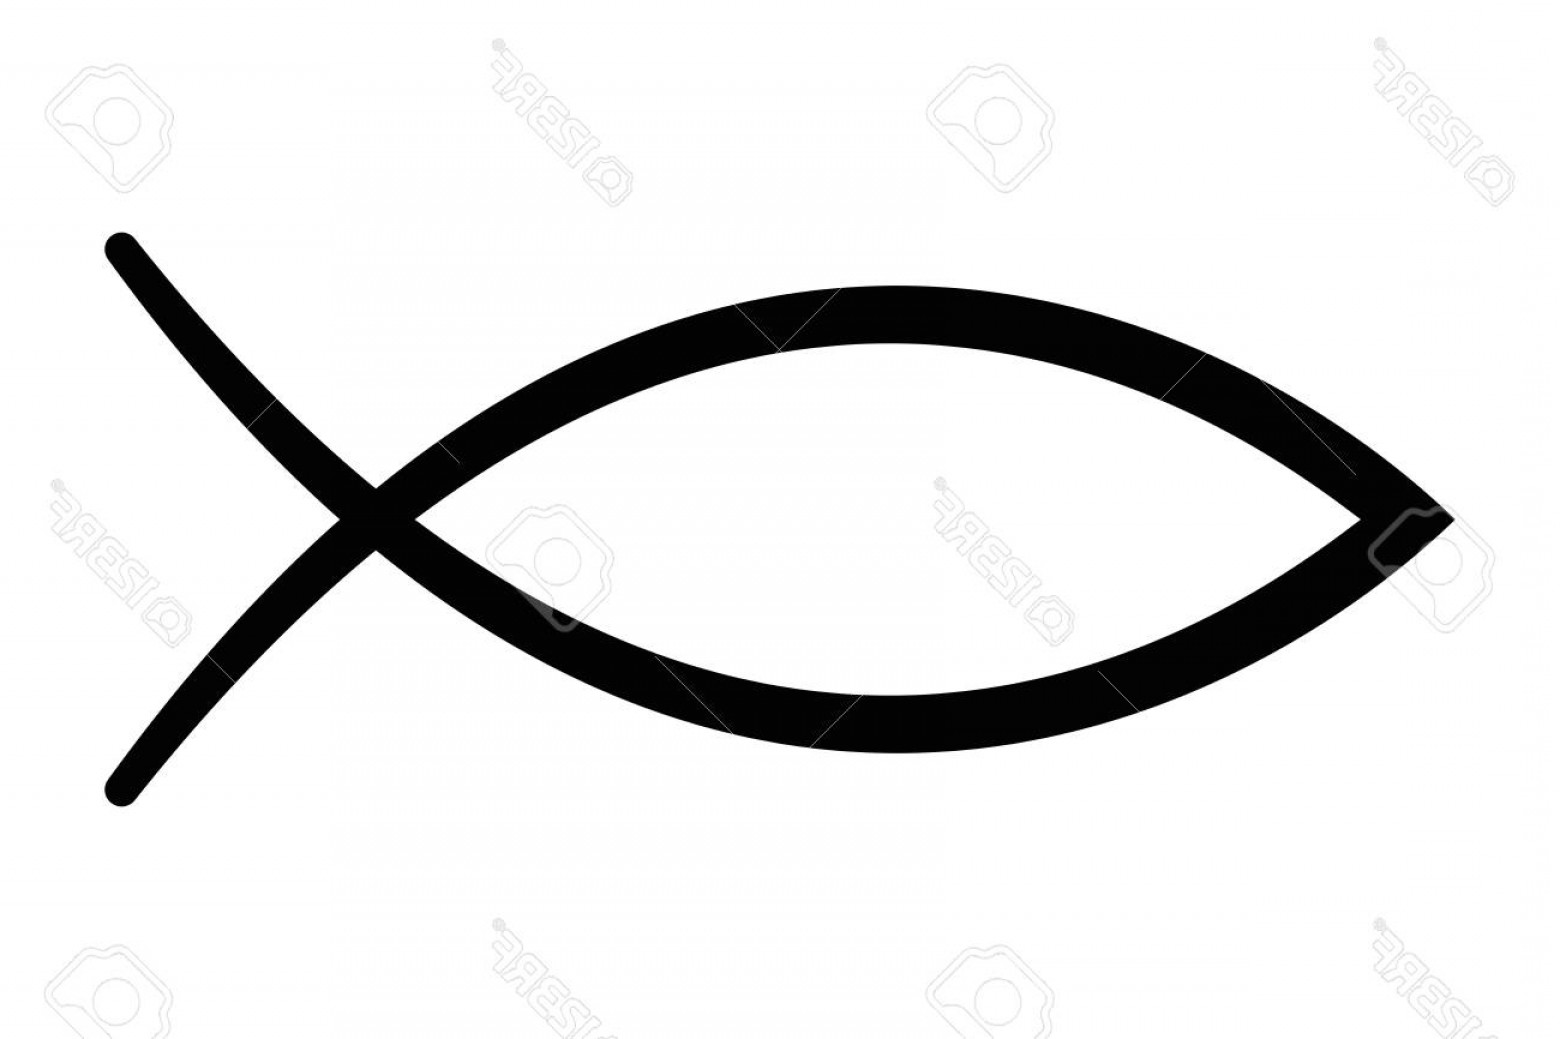 Christ Fish Vector: Photostock Vector Sign Of The Fish A Symbol Of Christian Art Also Known As Jesus Fish Symbol Consisting Of Two Interse